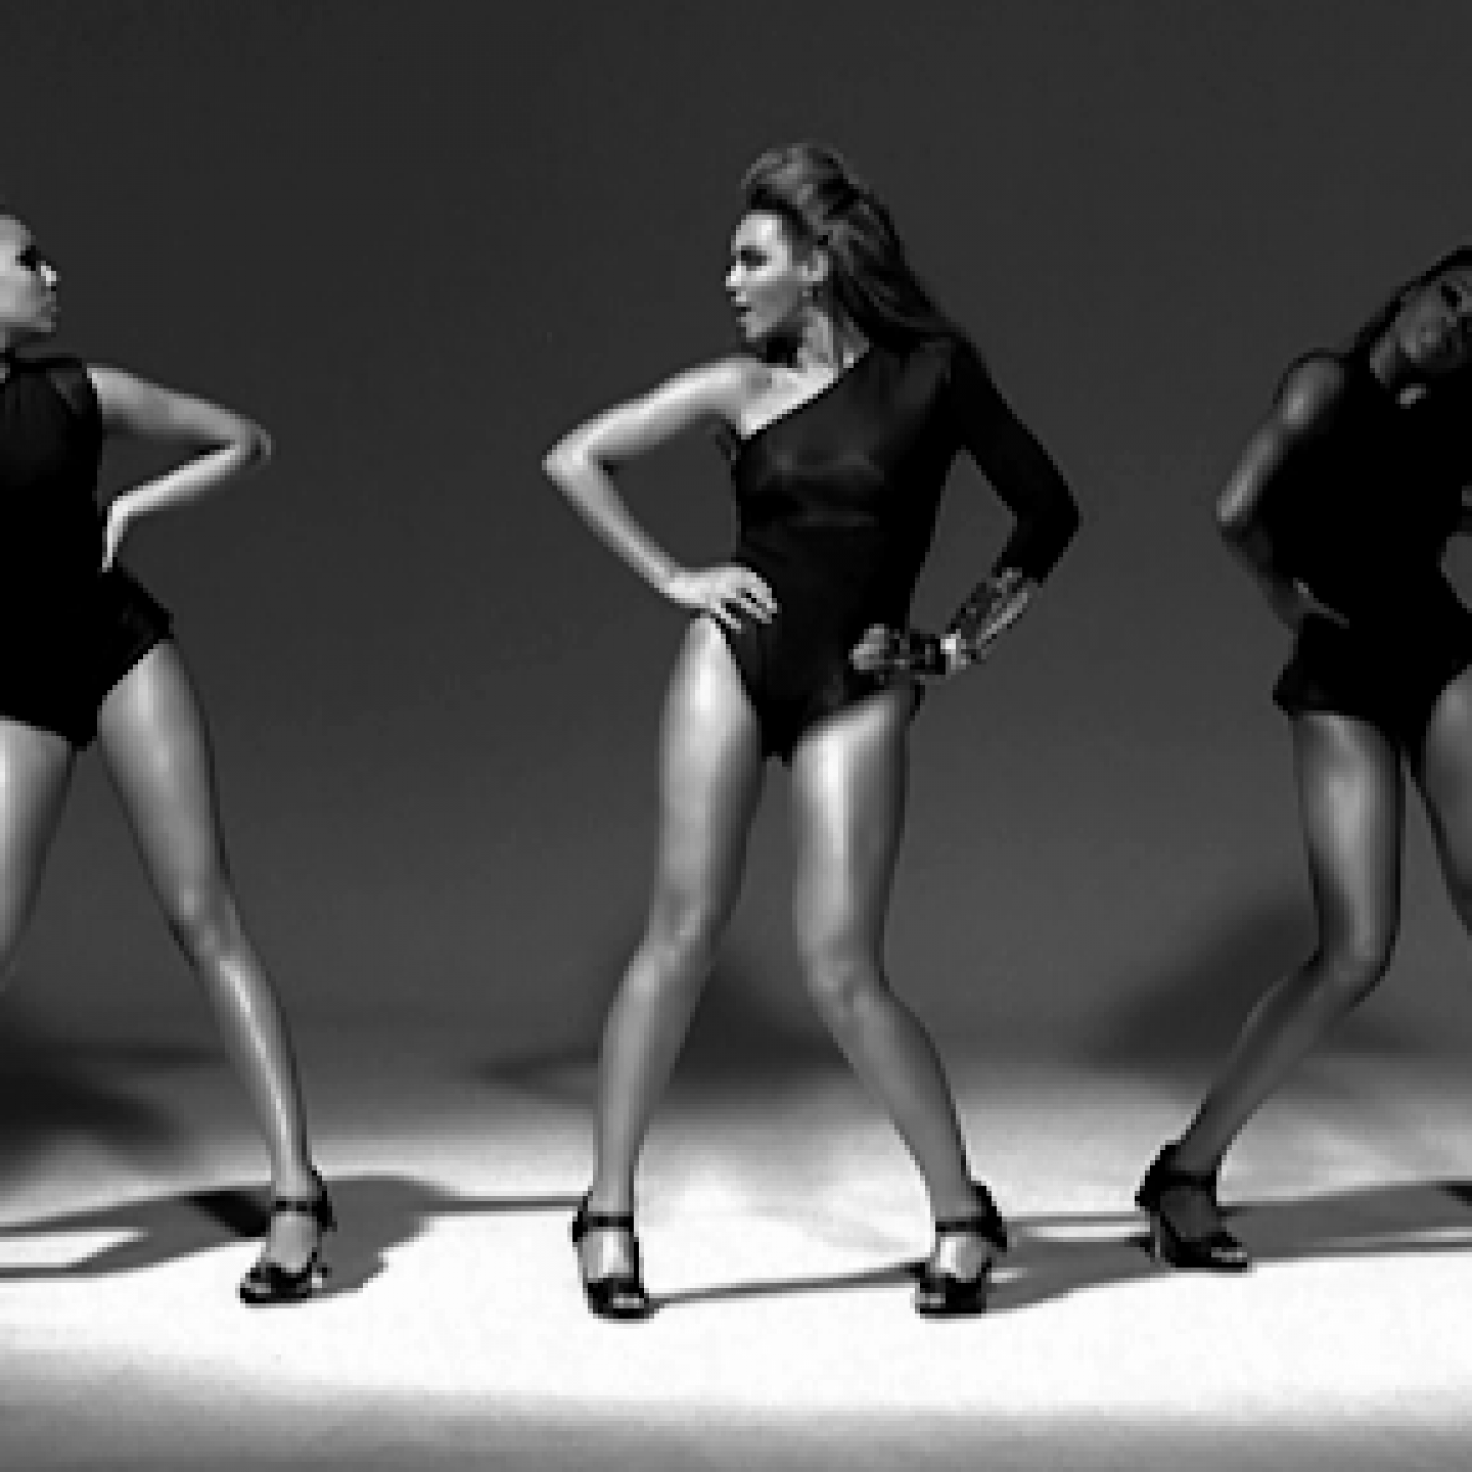 """The Choreographer Behind """"Single Ladies"""" And """"WAP"""" Seeks To Own His Dances"""